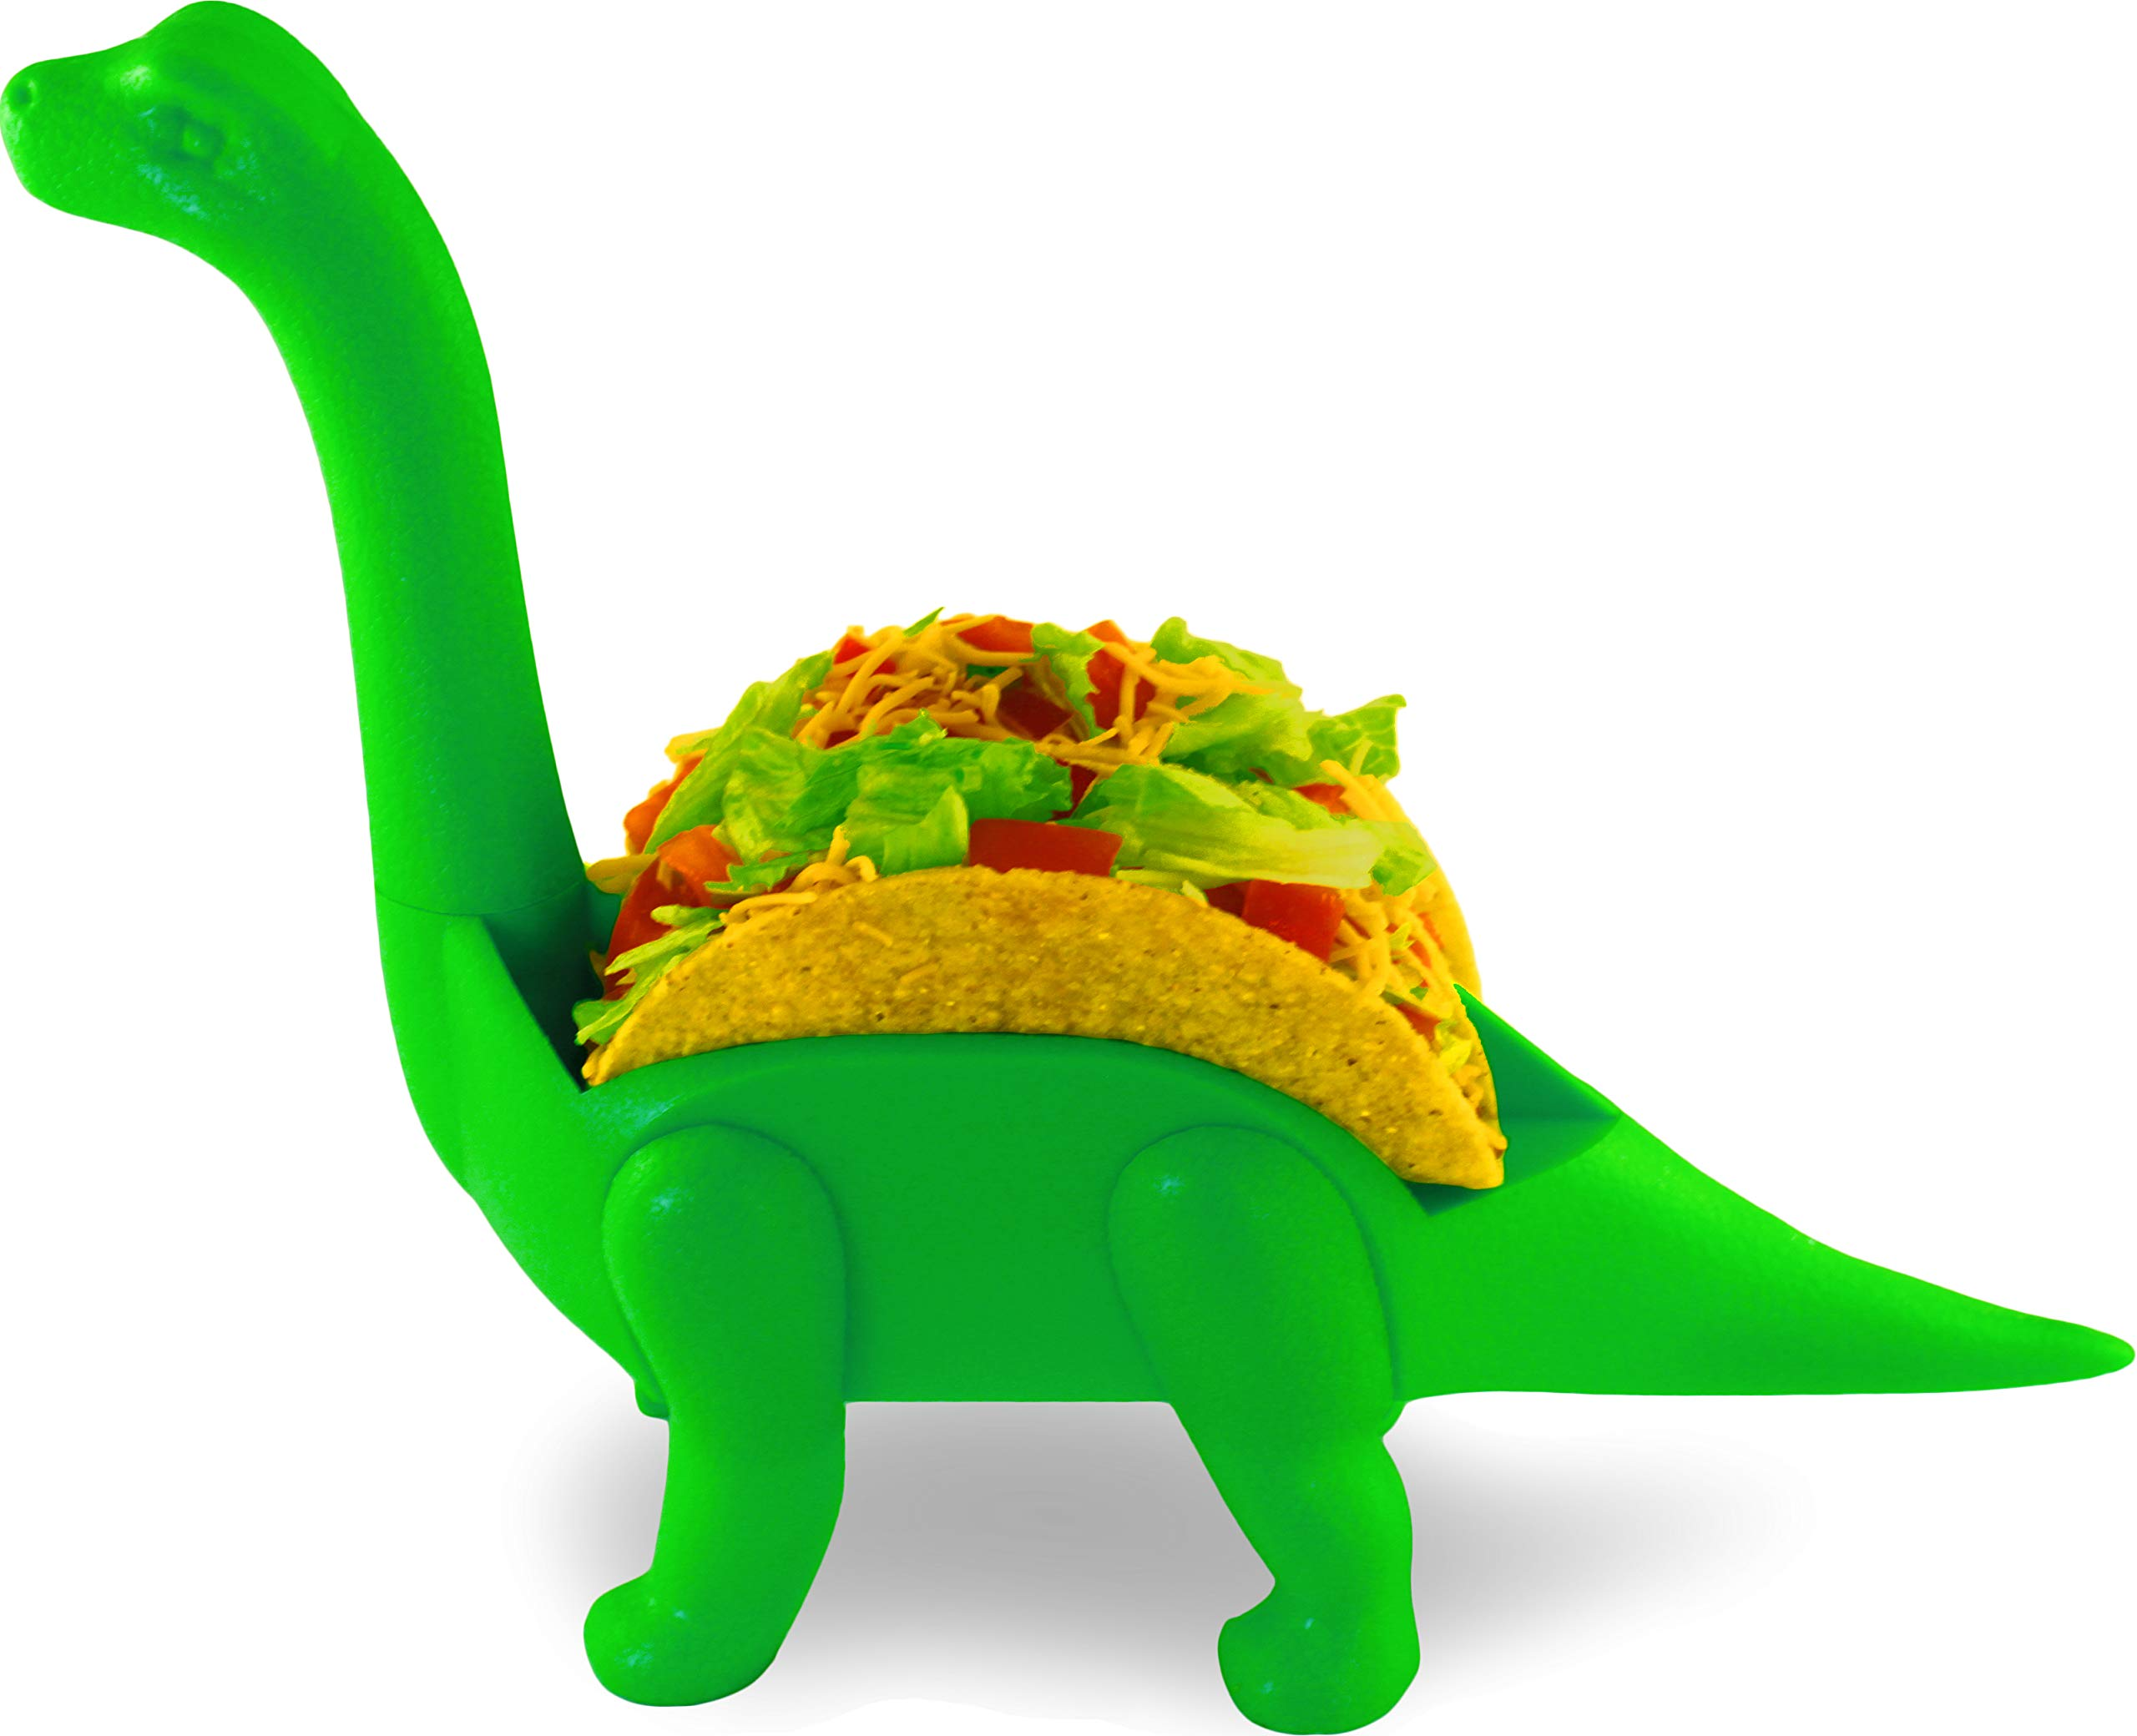 EWR Dinosaur Taco Holder - Brachiosaurus (Long Neck Dino), Ultimate Prehistoric Taco Stand for Jurassic Taco Tuesdays and Dinosaur Parties- Holds 2 Tacos- Perfect Gift for the Kids!